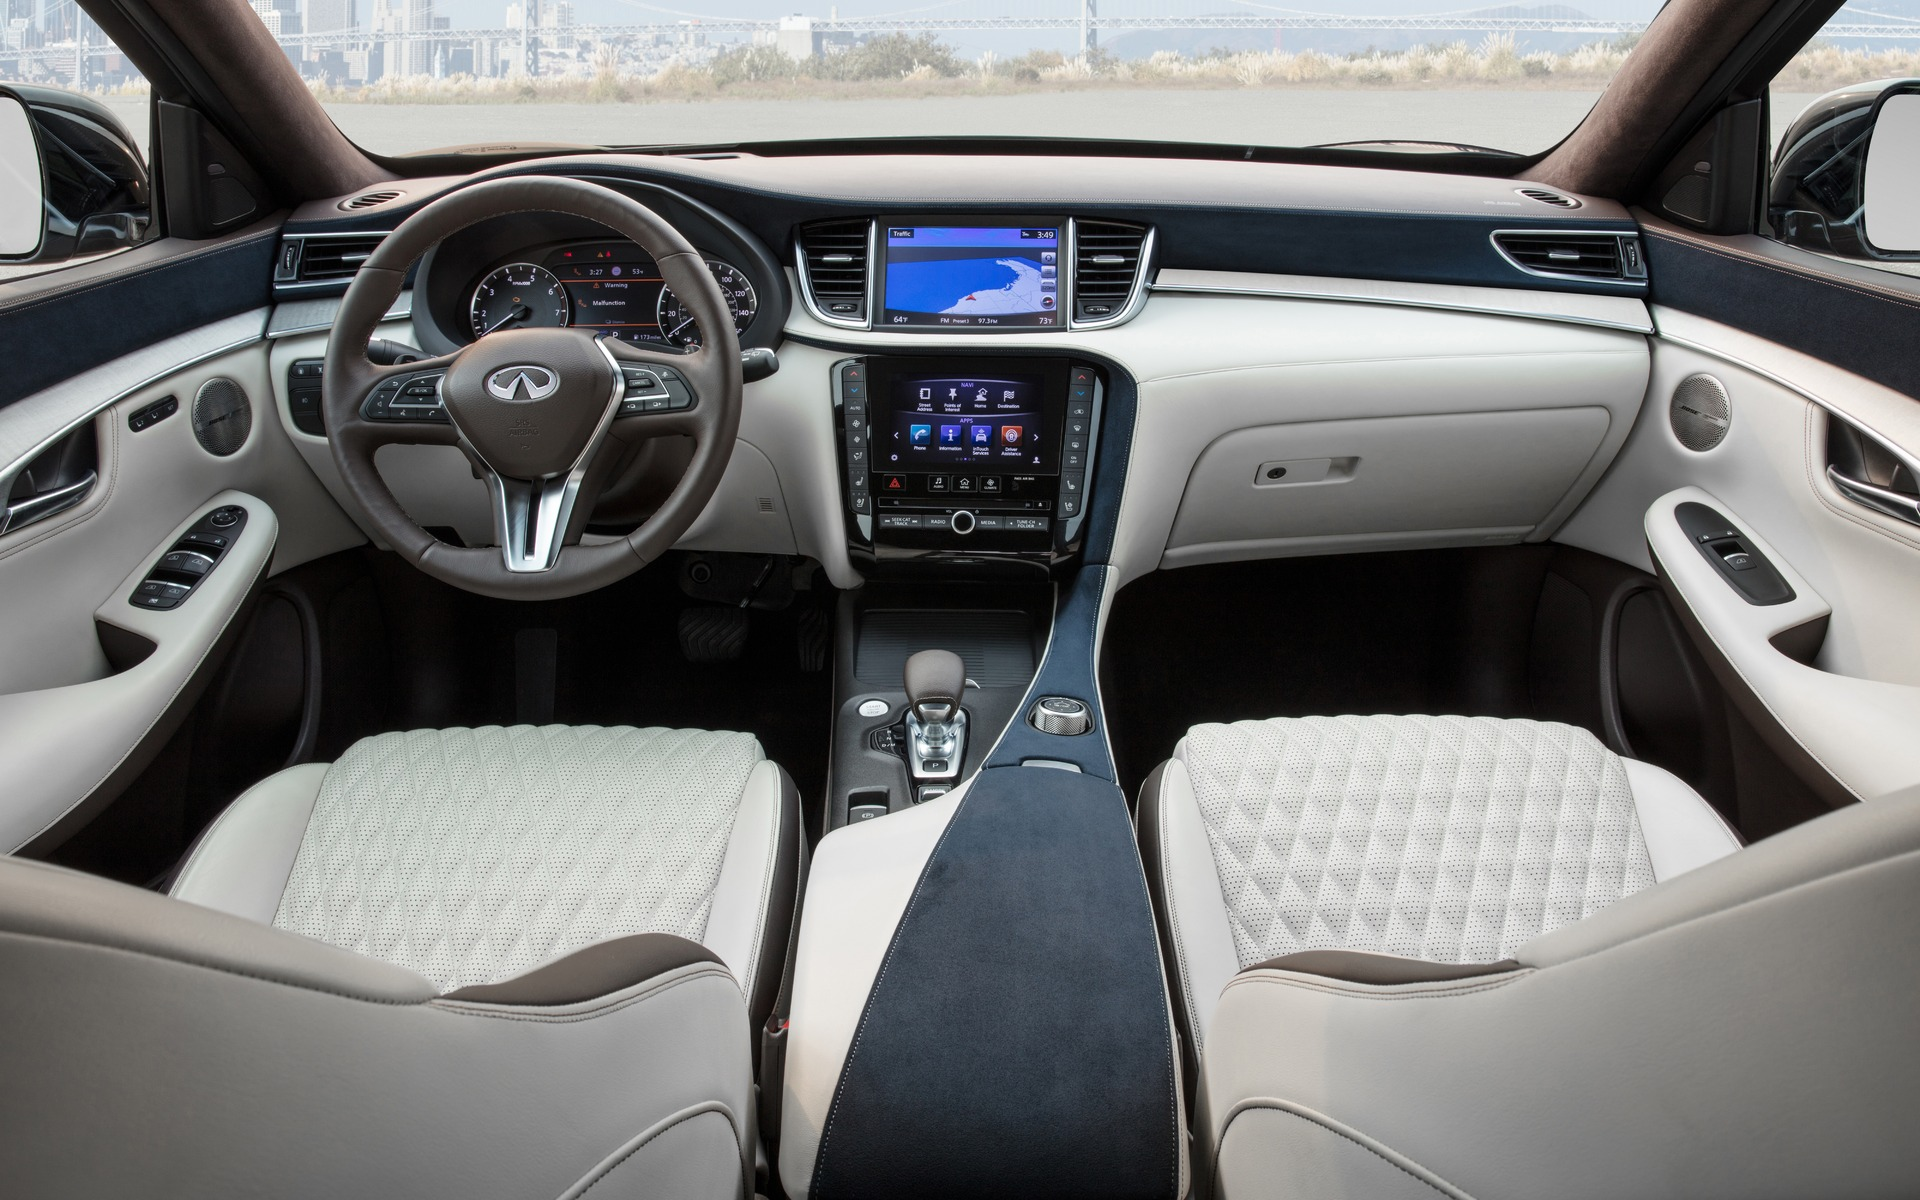 The 10 Best Car Interiors Of 2018 According To Wardsauto 3 10